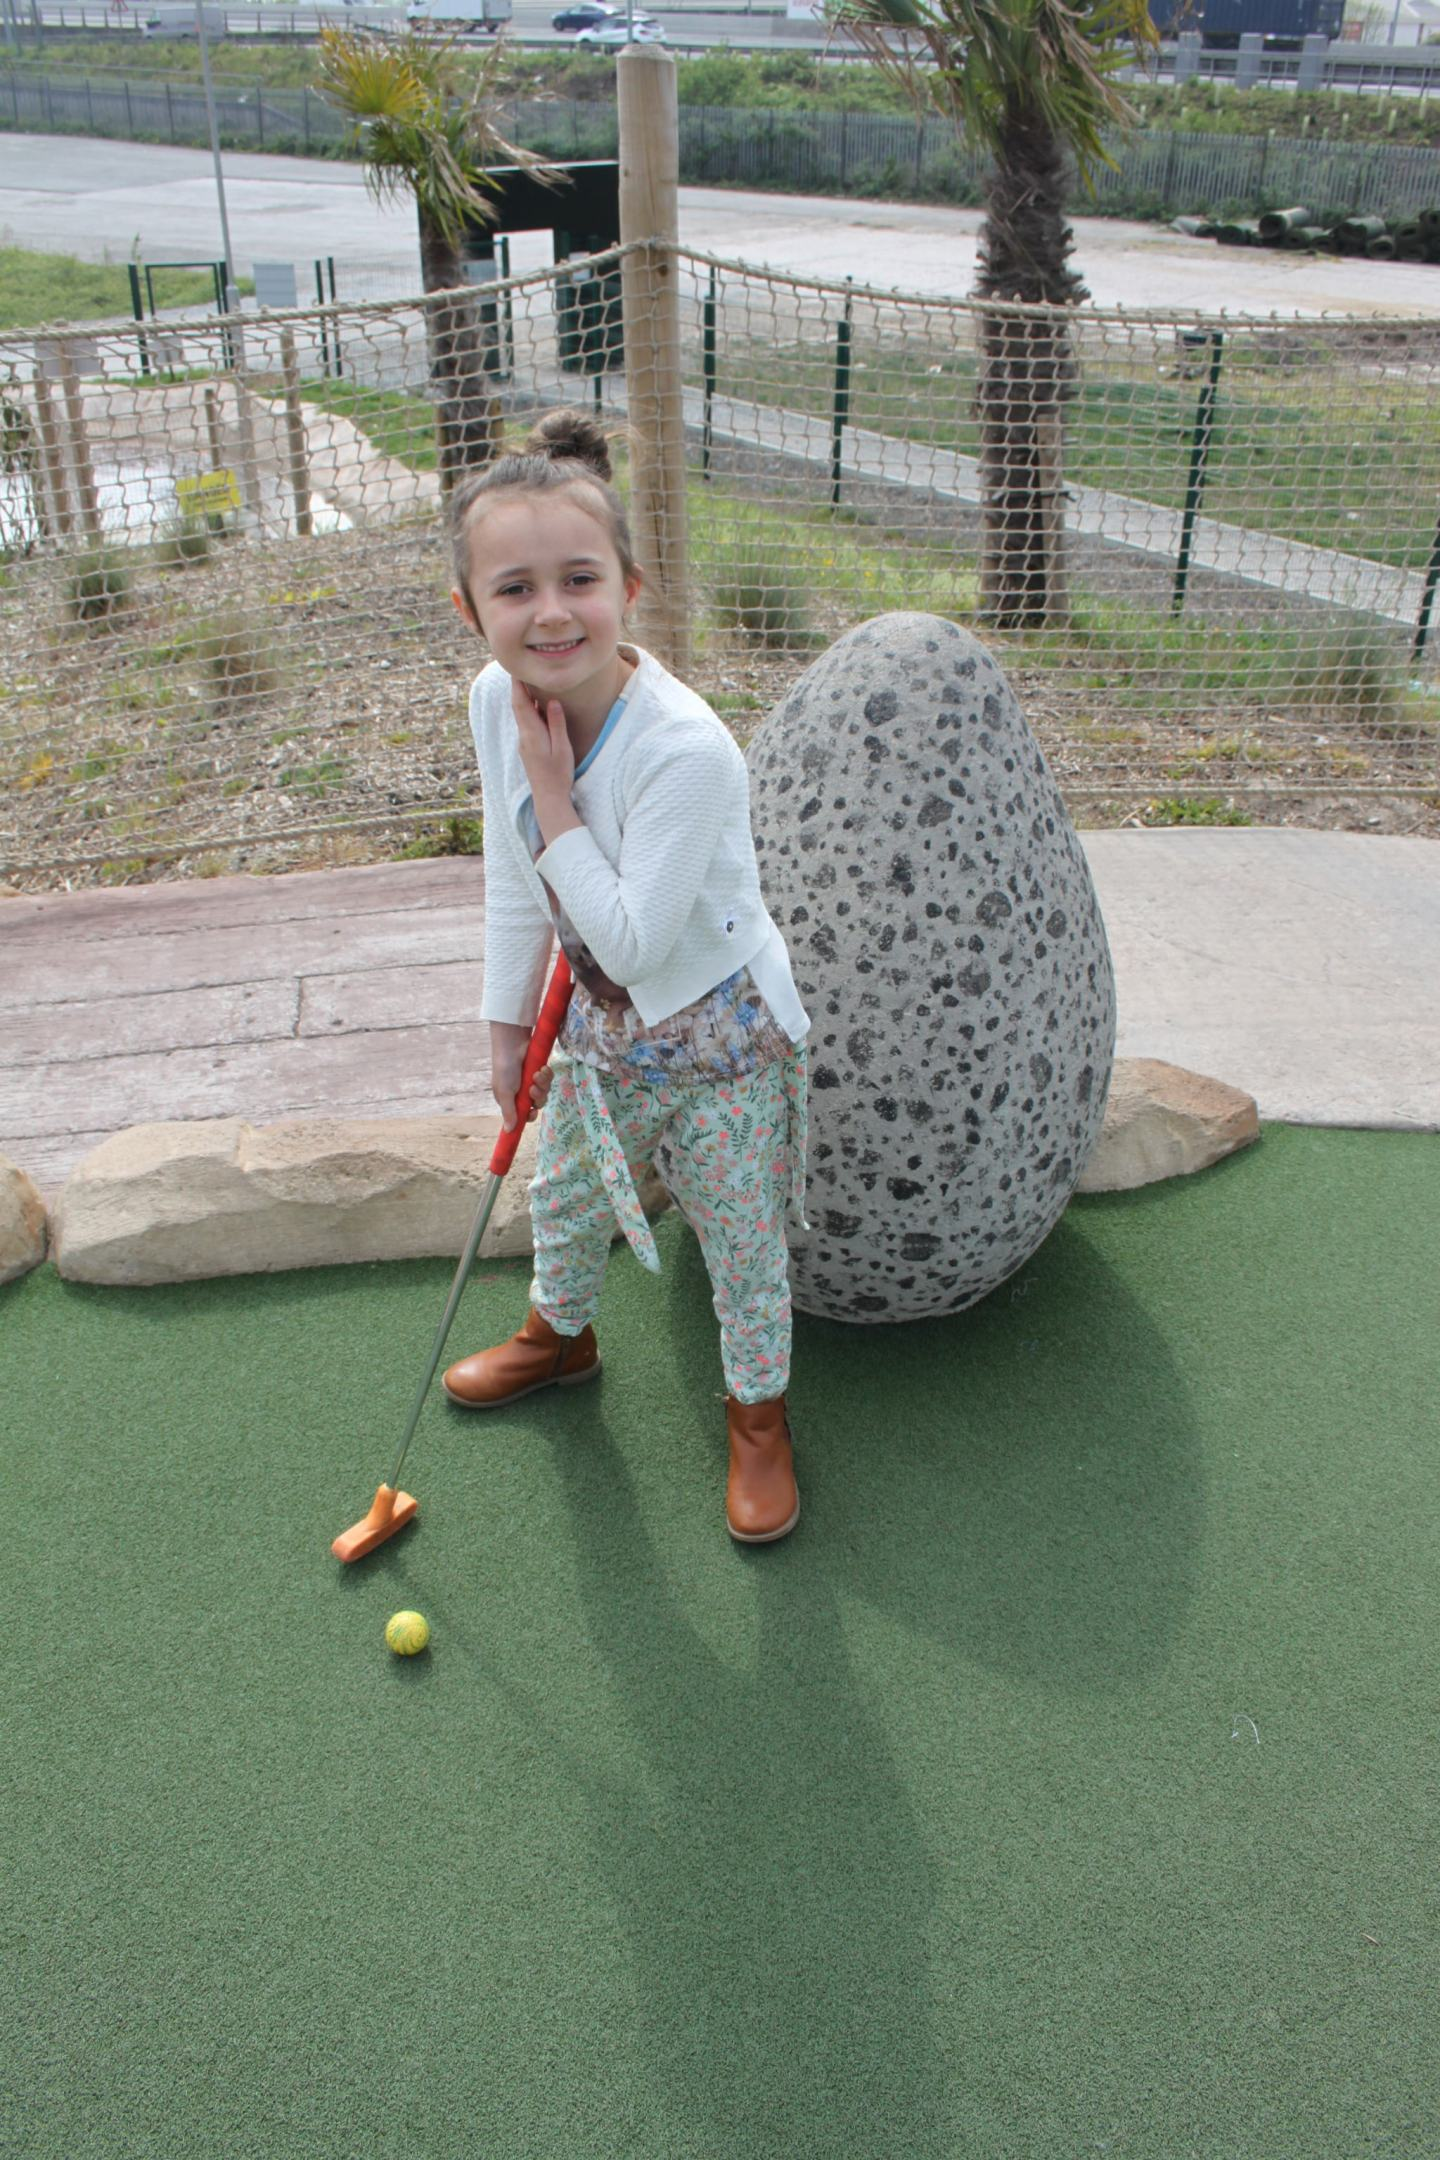 Aurelia and the Crazy Golf course